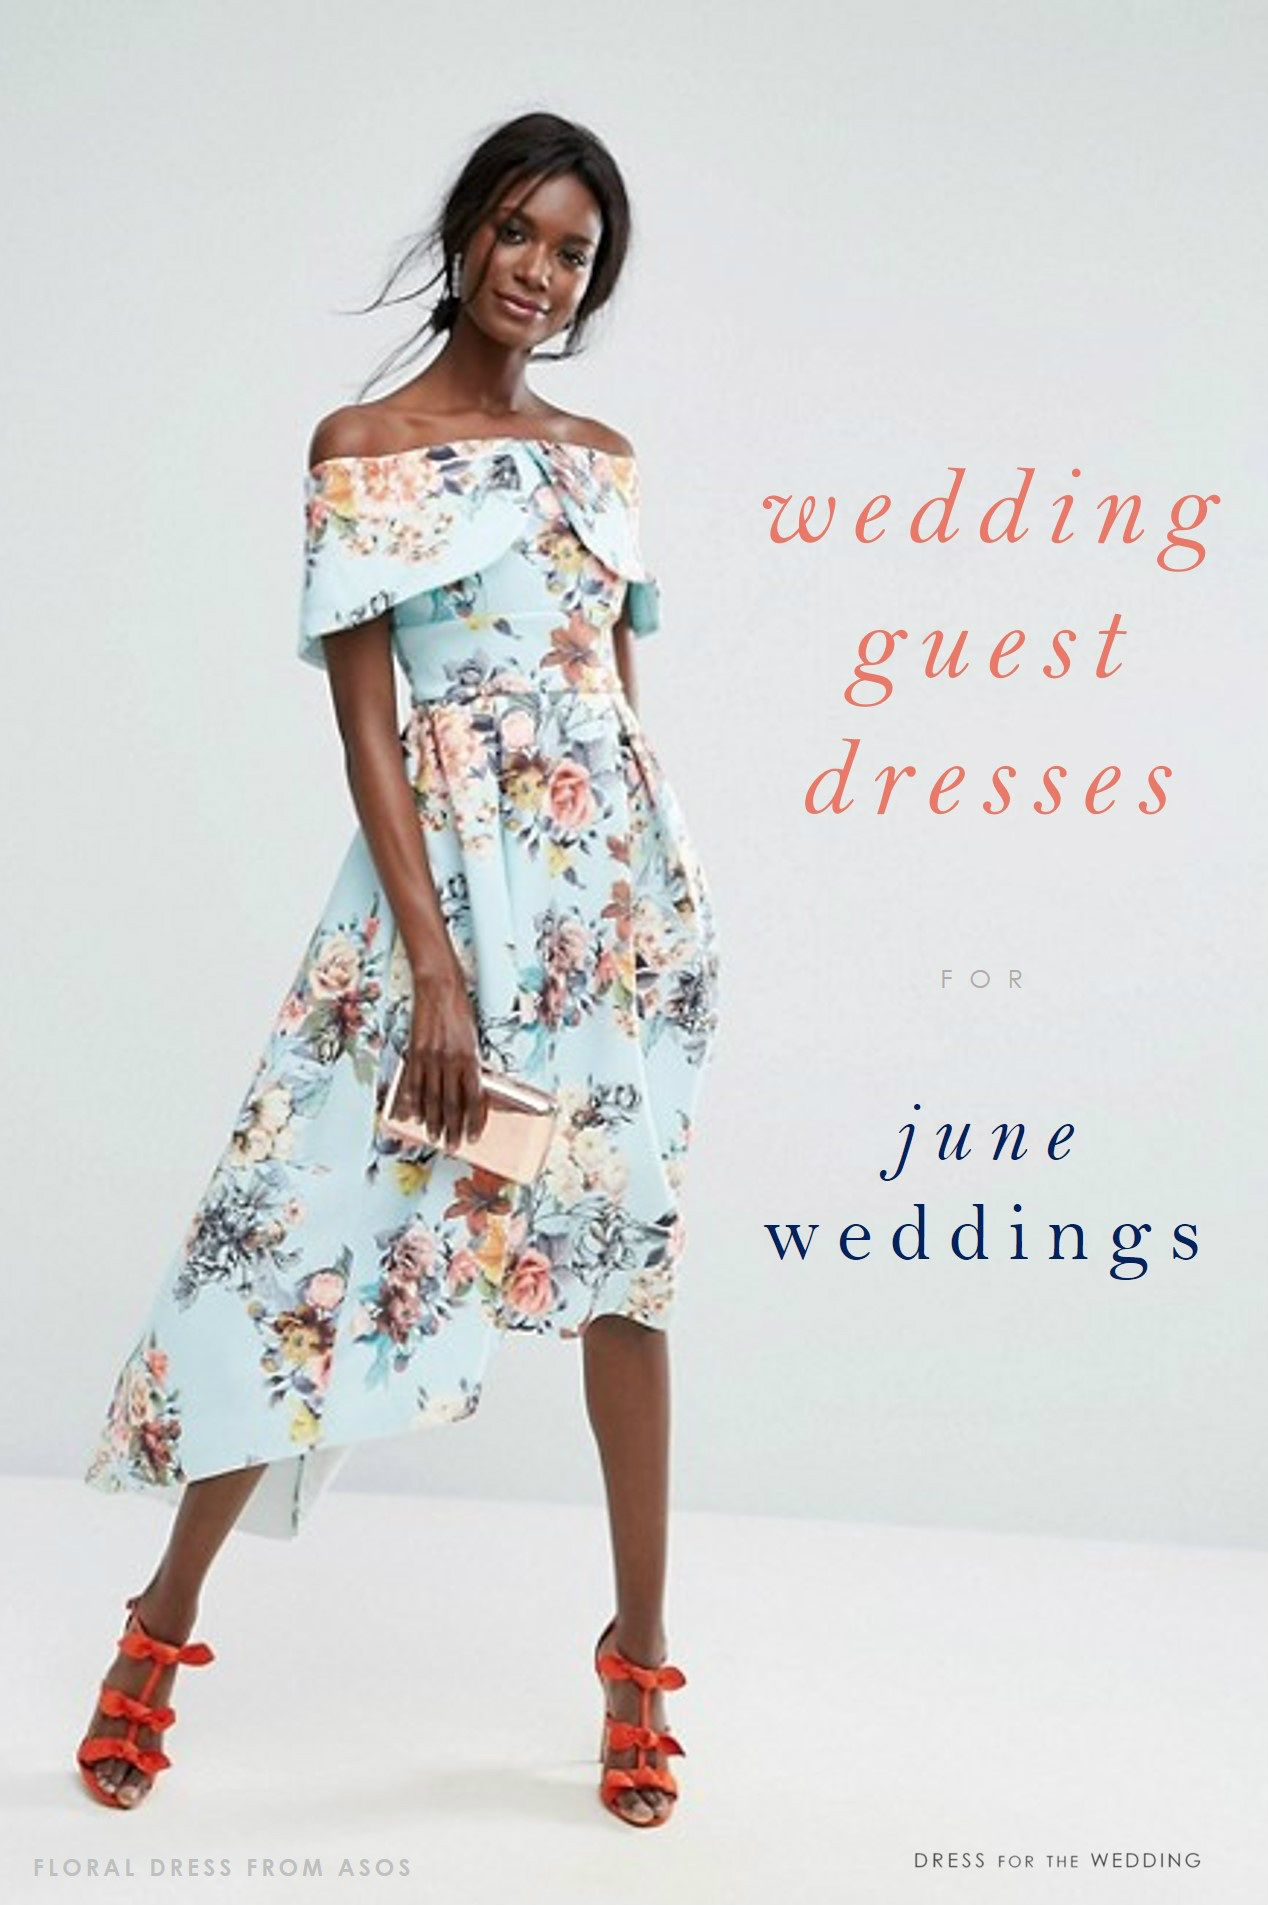 03f3006523d Tons of ideas for wedding guest dresses for June 2017 weddings